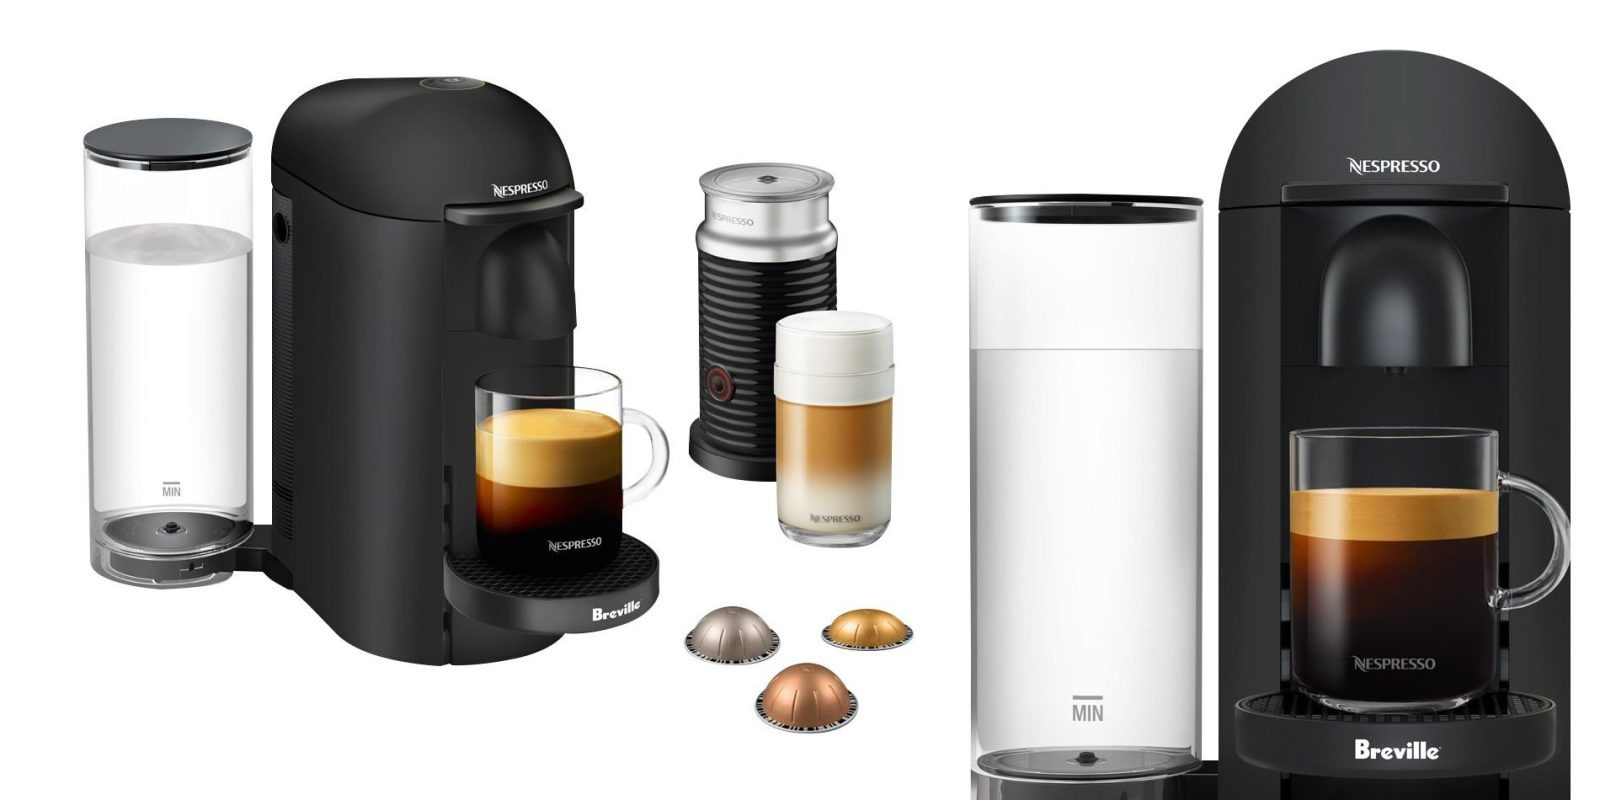 Nespresso's VertuoPlus Espresso Maker is up to $140 off today at $110 shipped